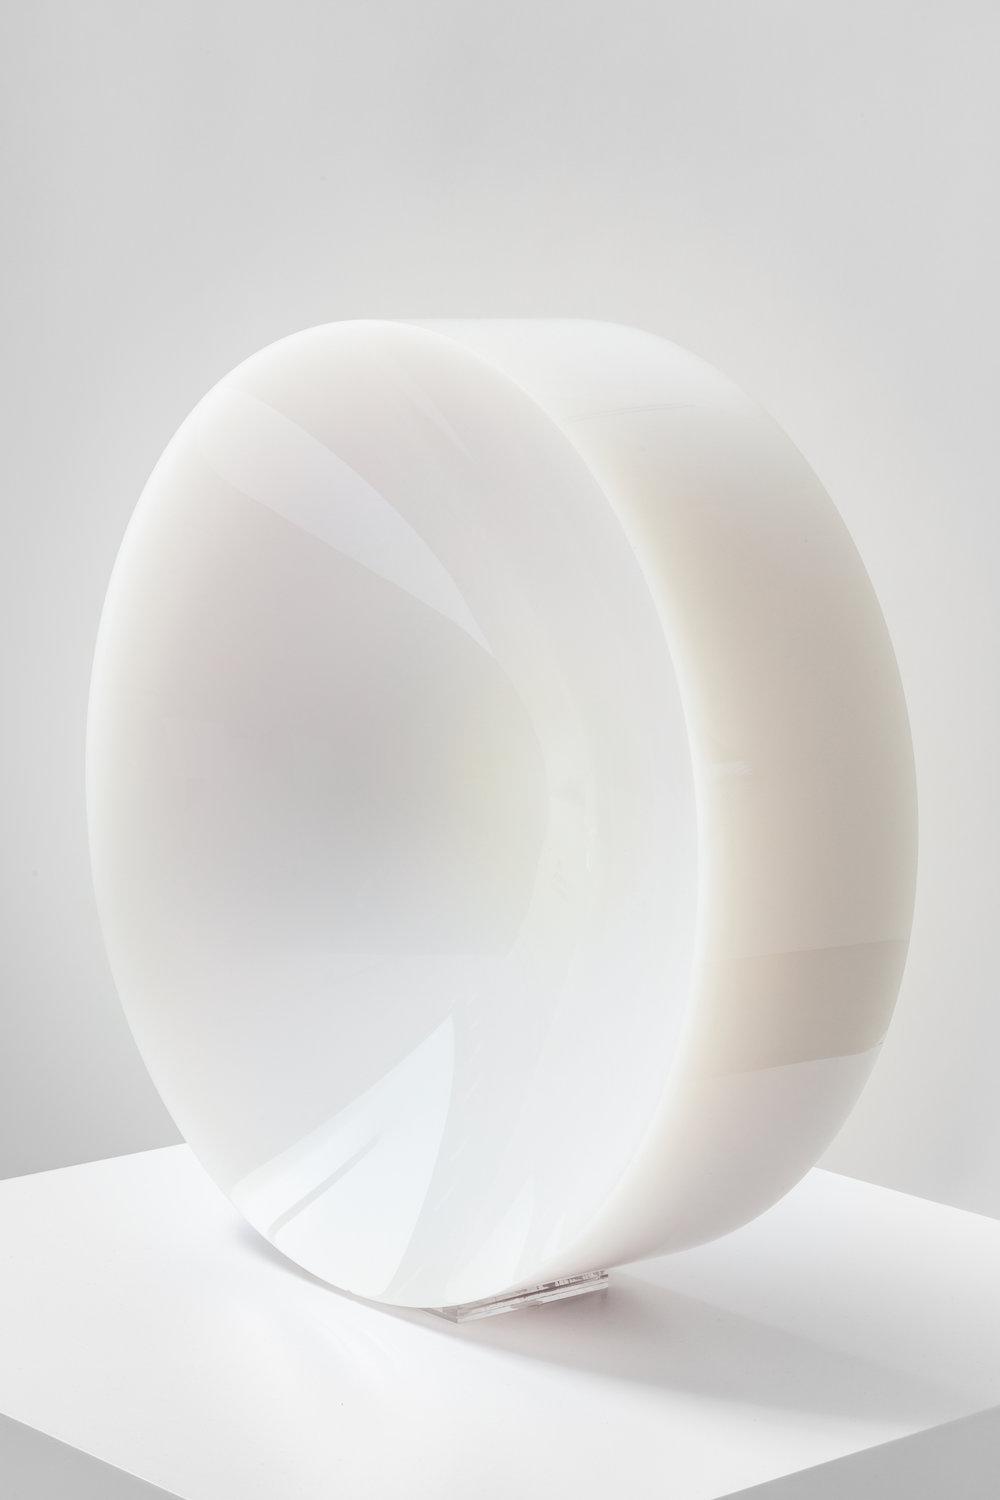 UNTITLED (WHITE DWARF), 1974